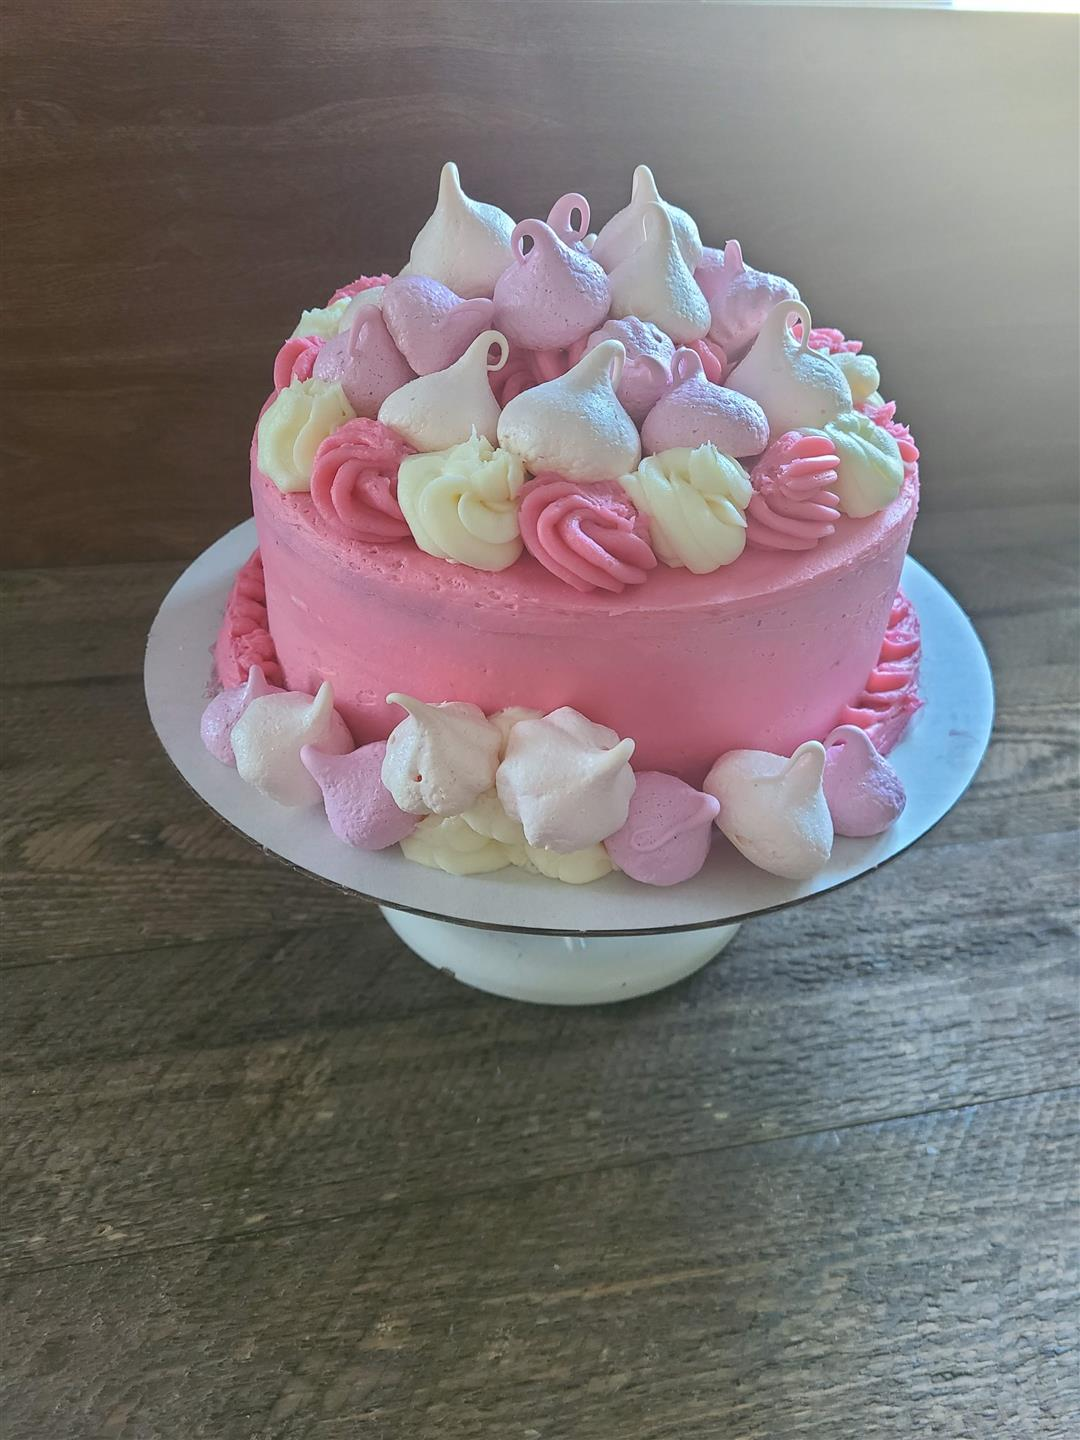 Circular cake with pink frosting and decorated with frosting swirls and meruinge